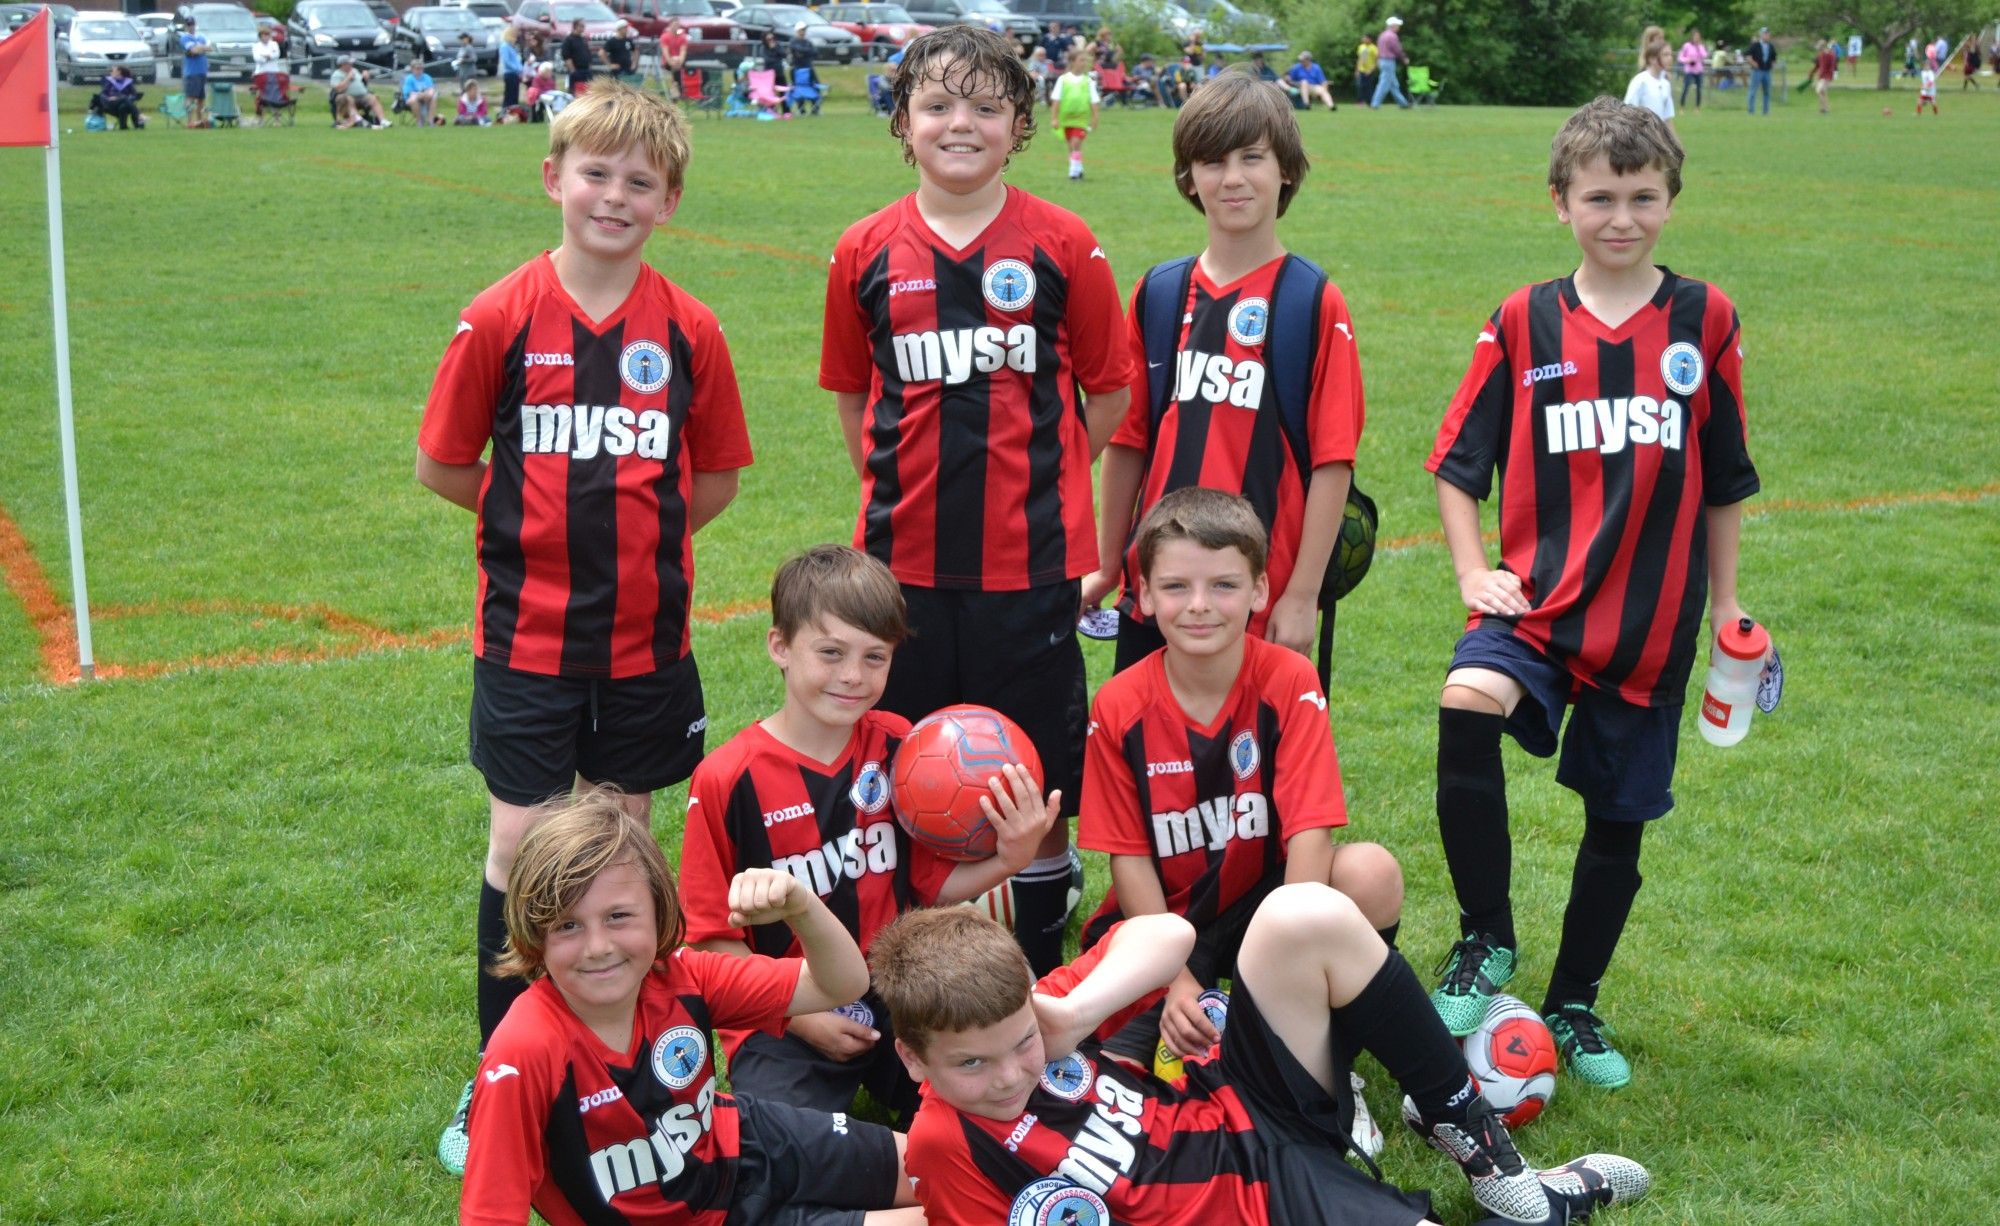 Marblehead Youth Soccer Association